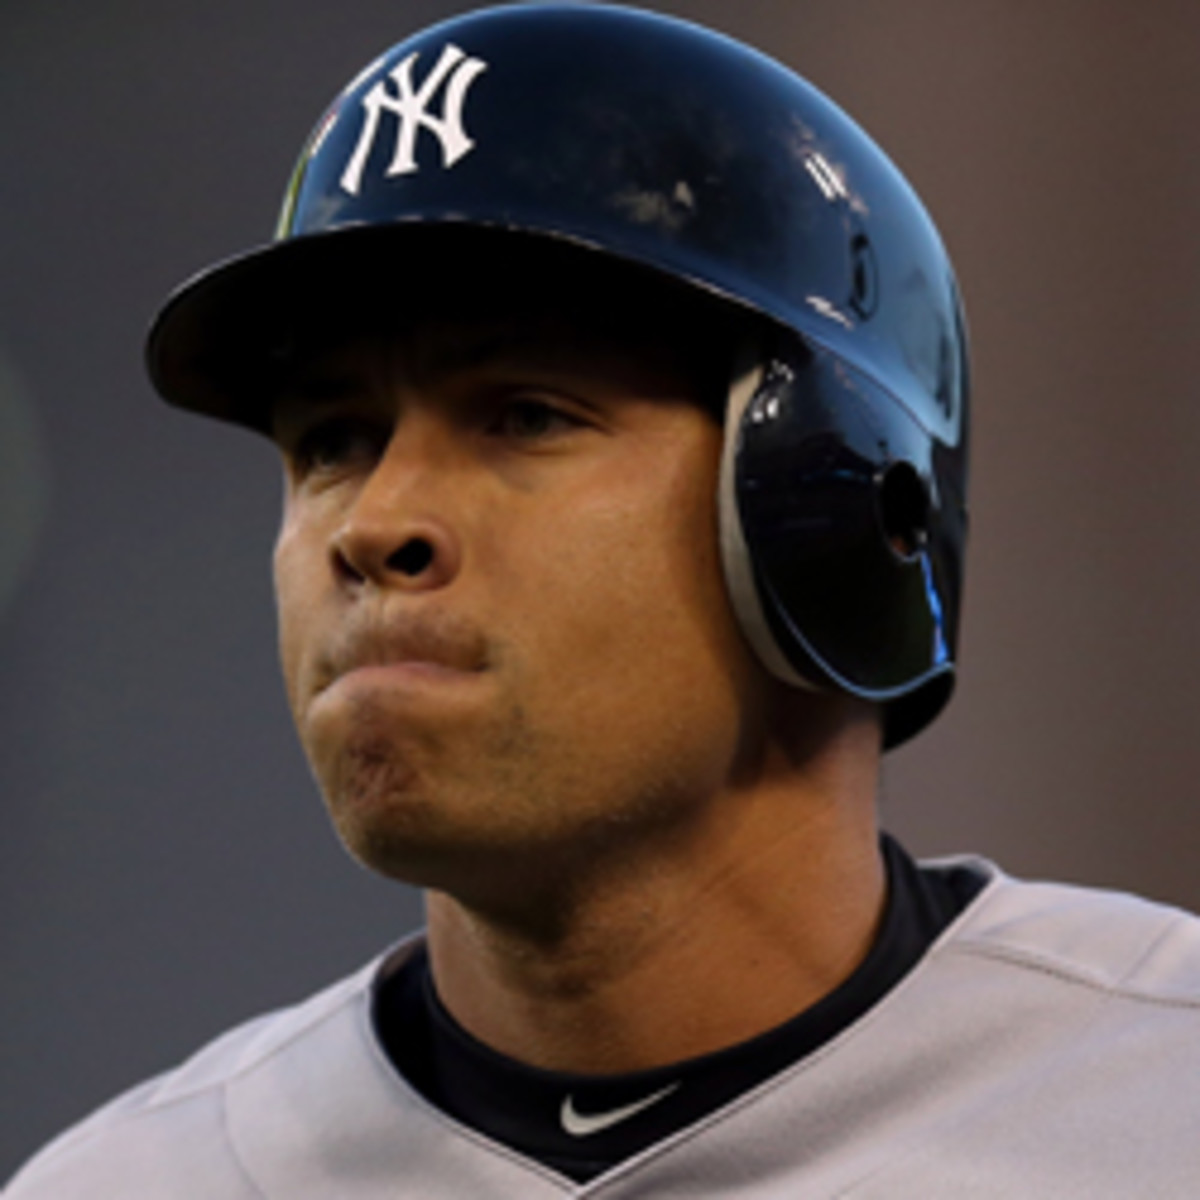 Alex Rodriguez has denied a recent report linking him to PEDs. (Jonathan Daniel/Getty Images)